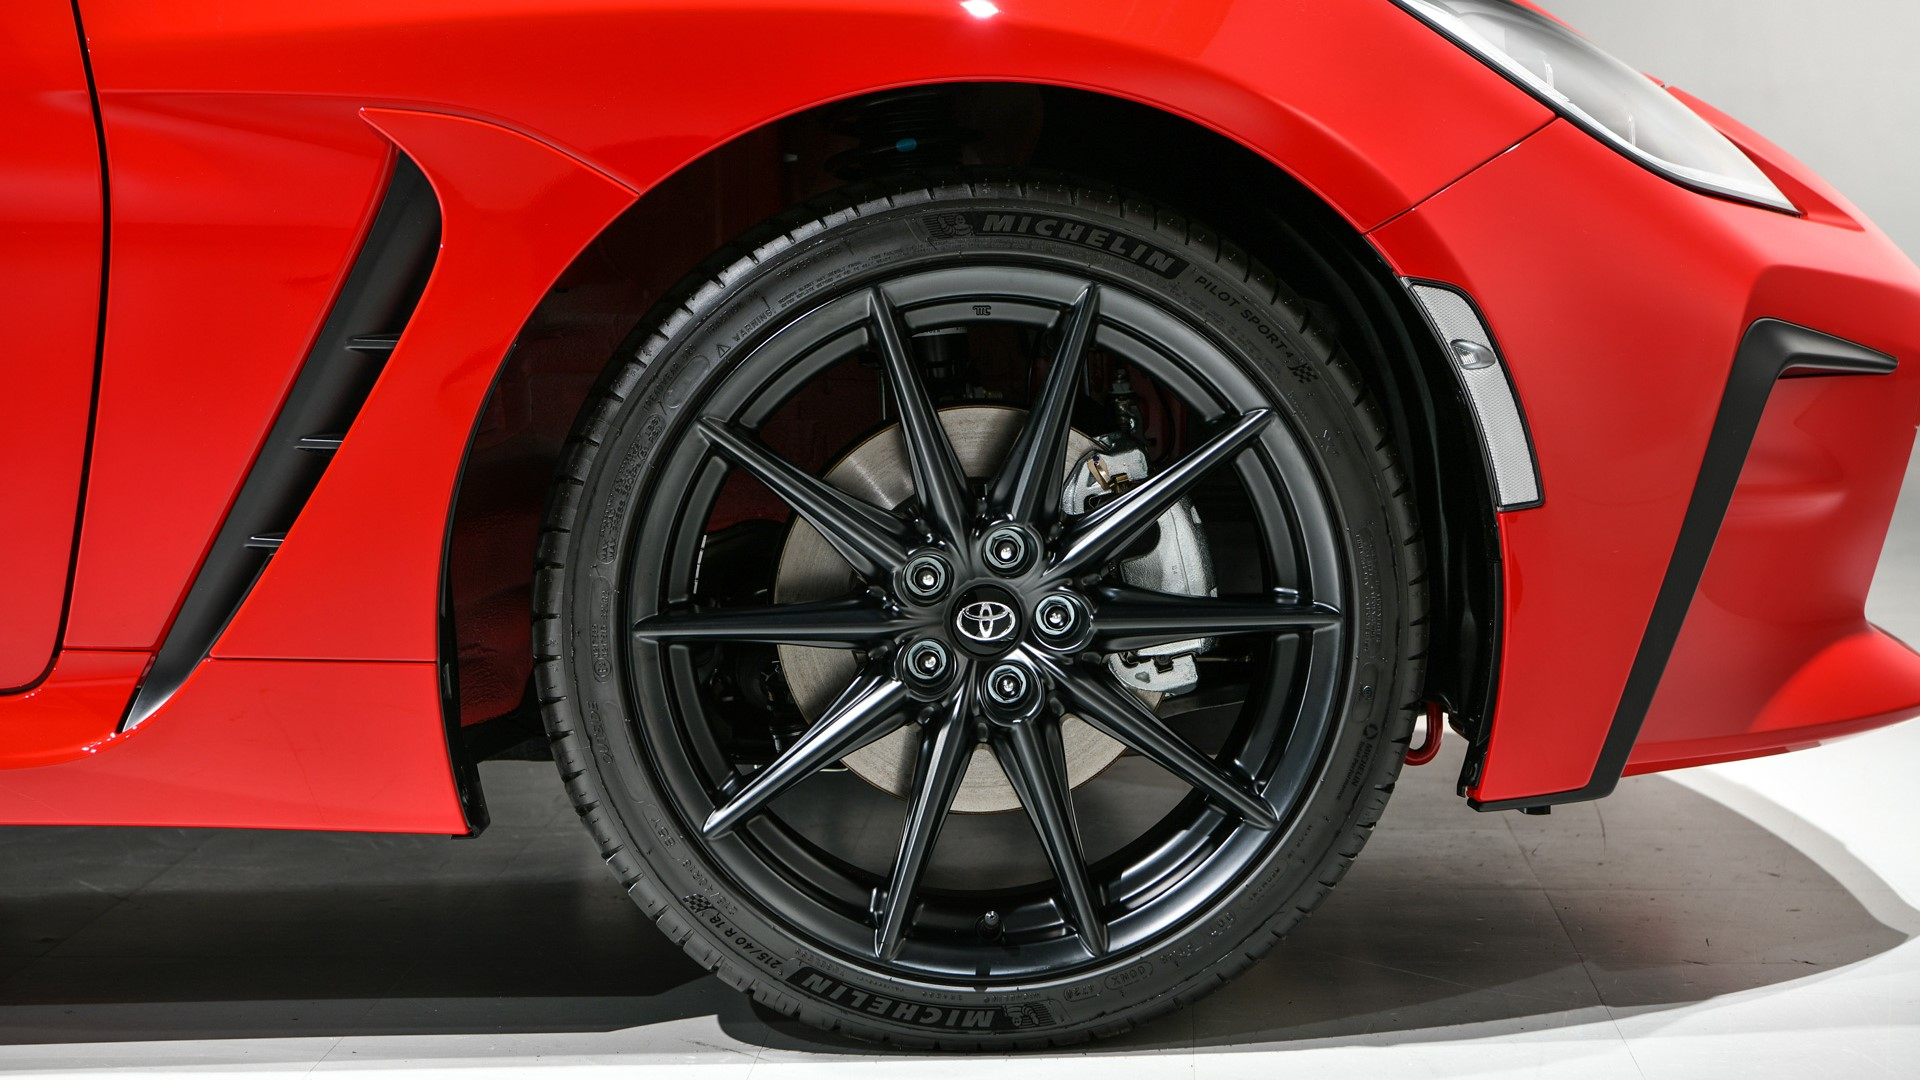 The Toyota 86 Front Tire